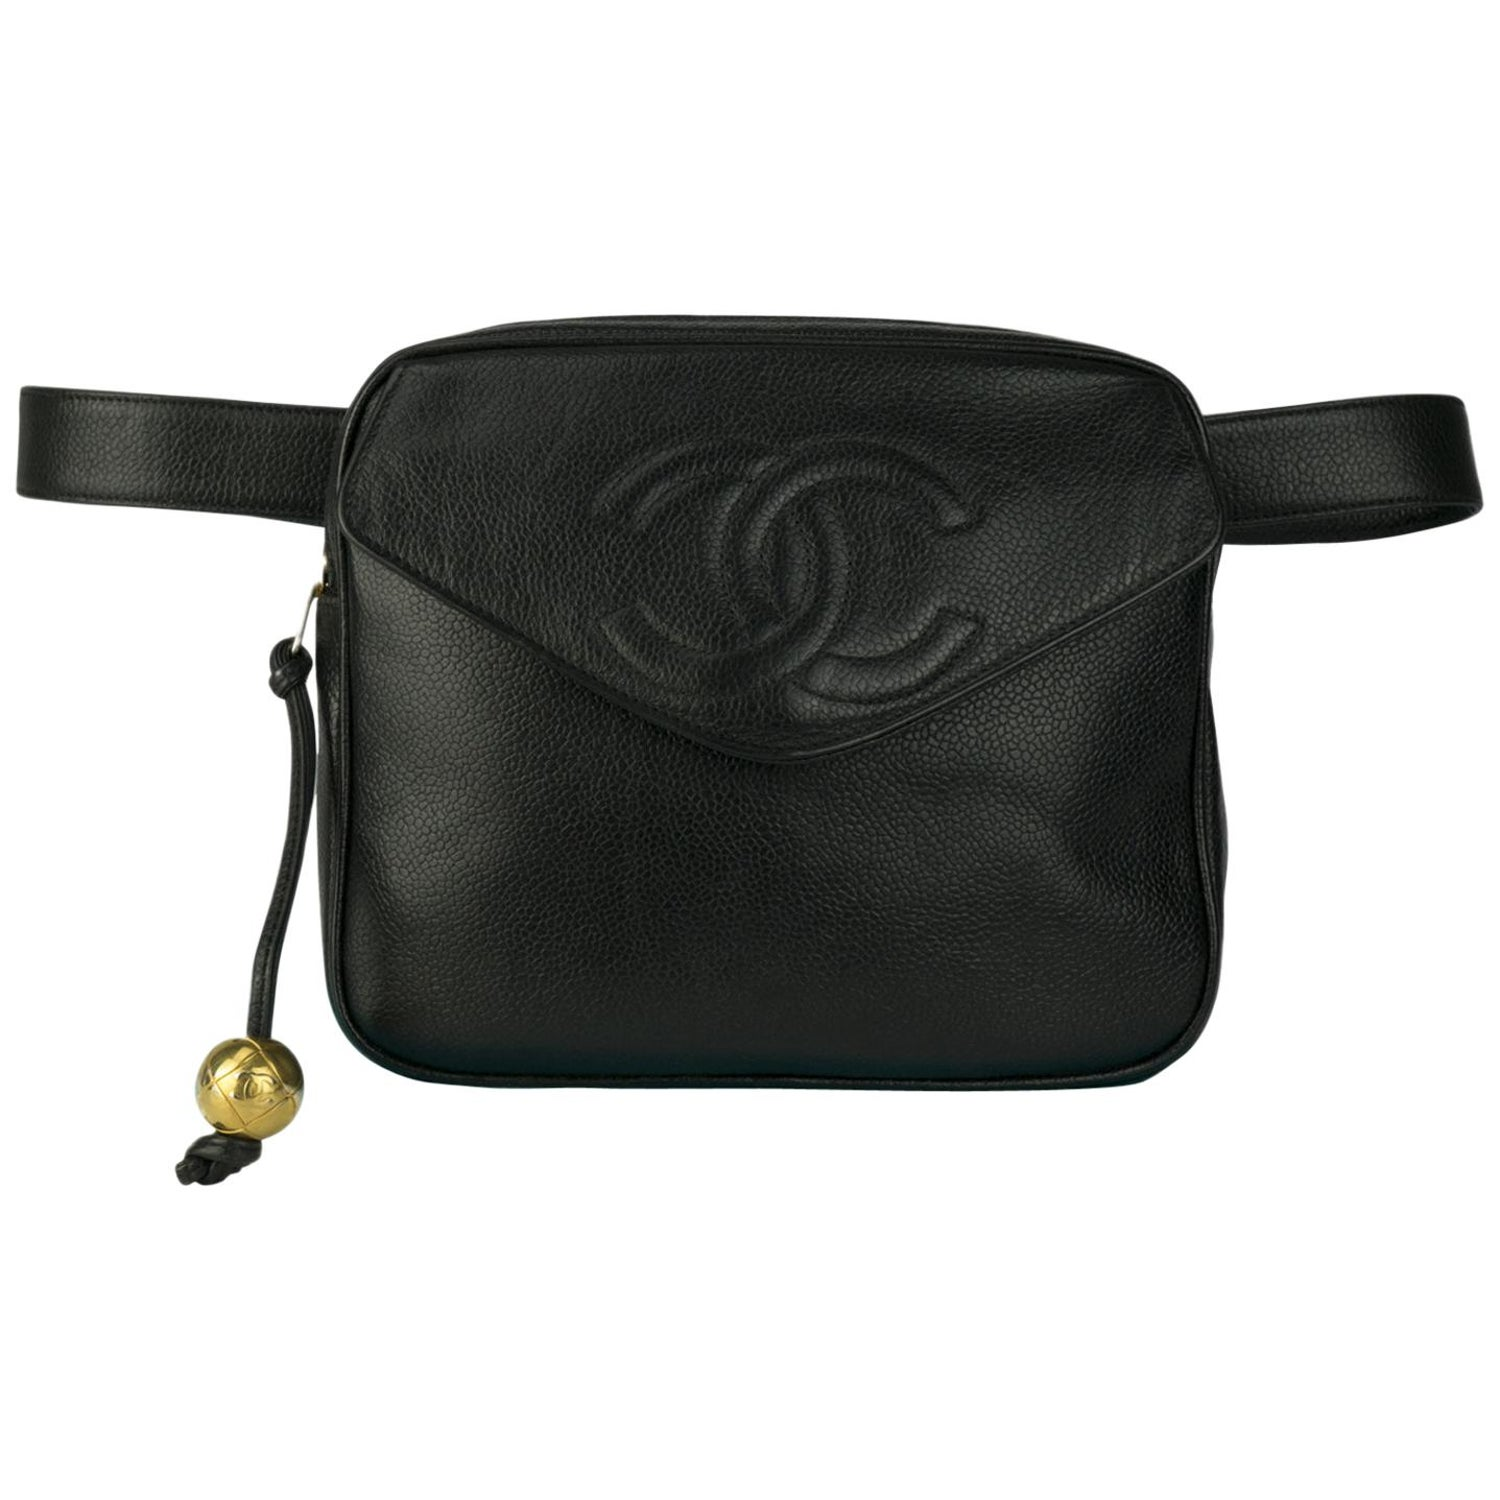 1cadc724a7477 Chanel Large Caviar Envelope Fanny Pack at 1stdibs